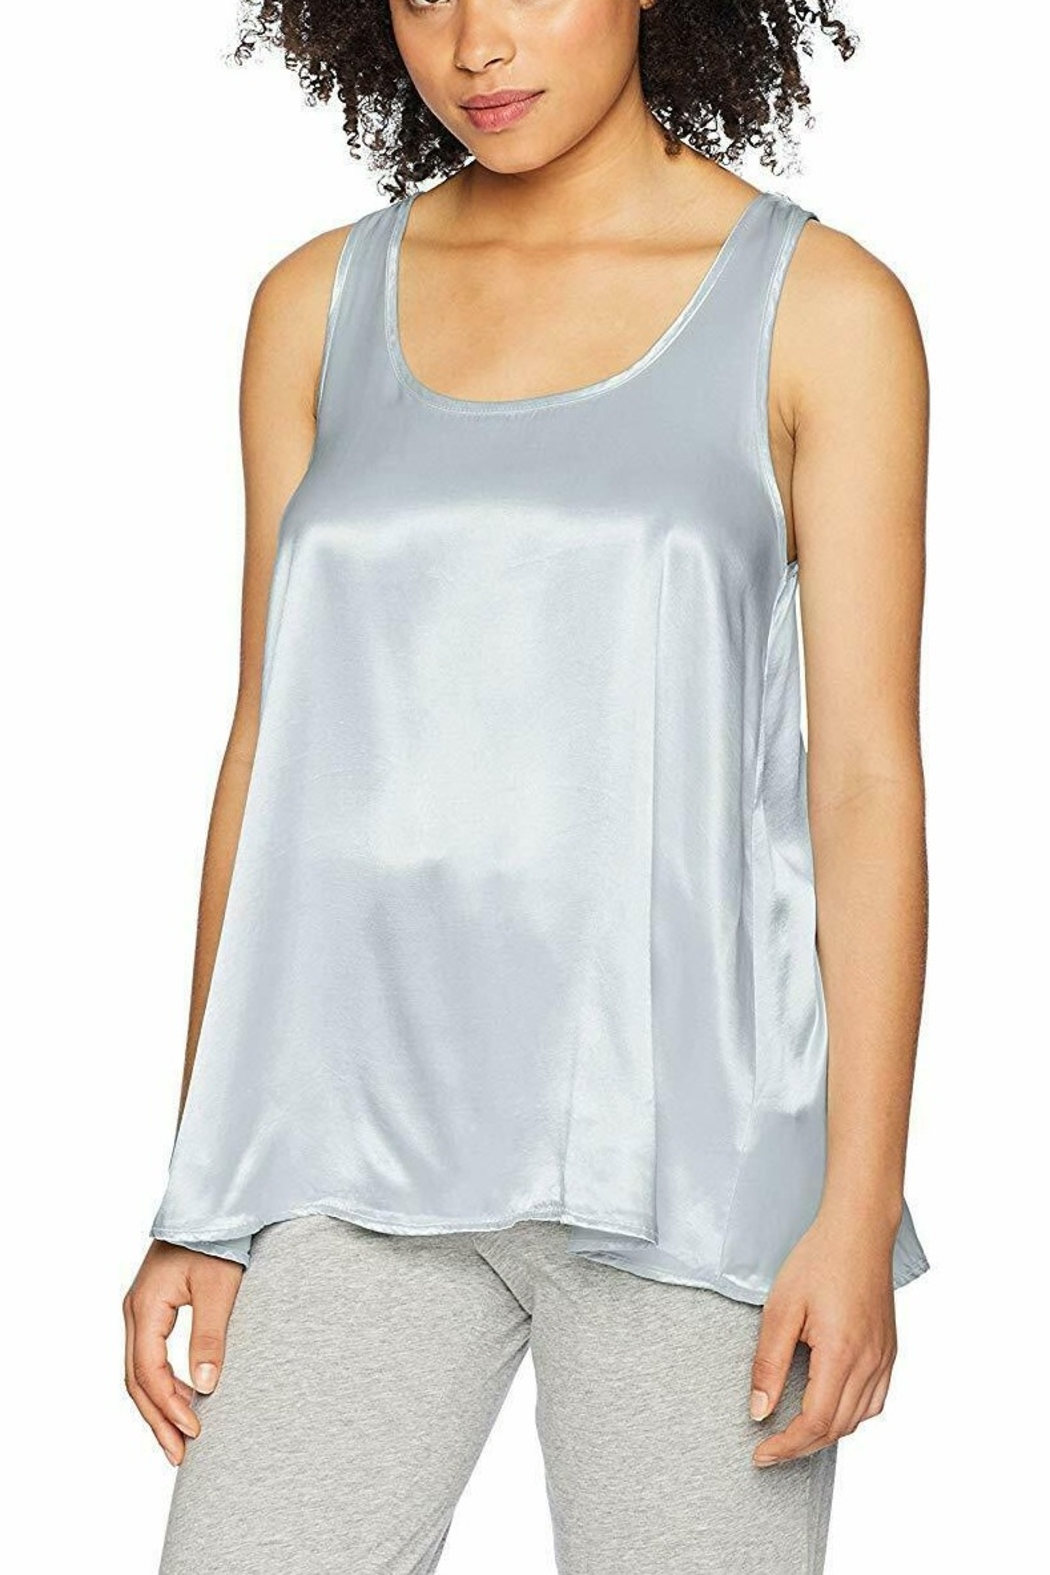 PJHARLOW Satin Cami With Pleated Back - Main Image